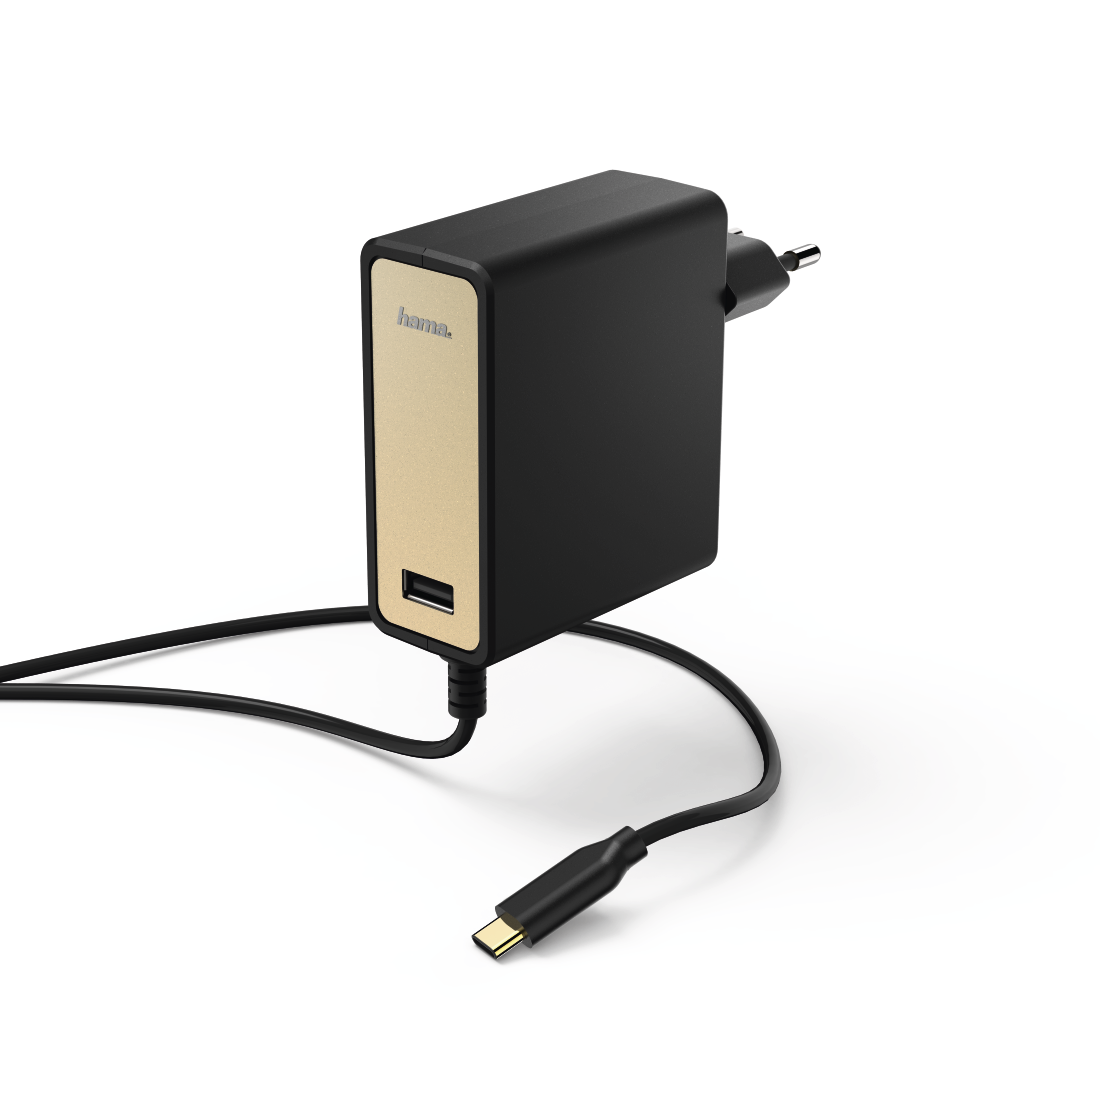 00054184 Hama USB C Netzteil, Power Delivery (PD), 5 20V60W